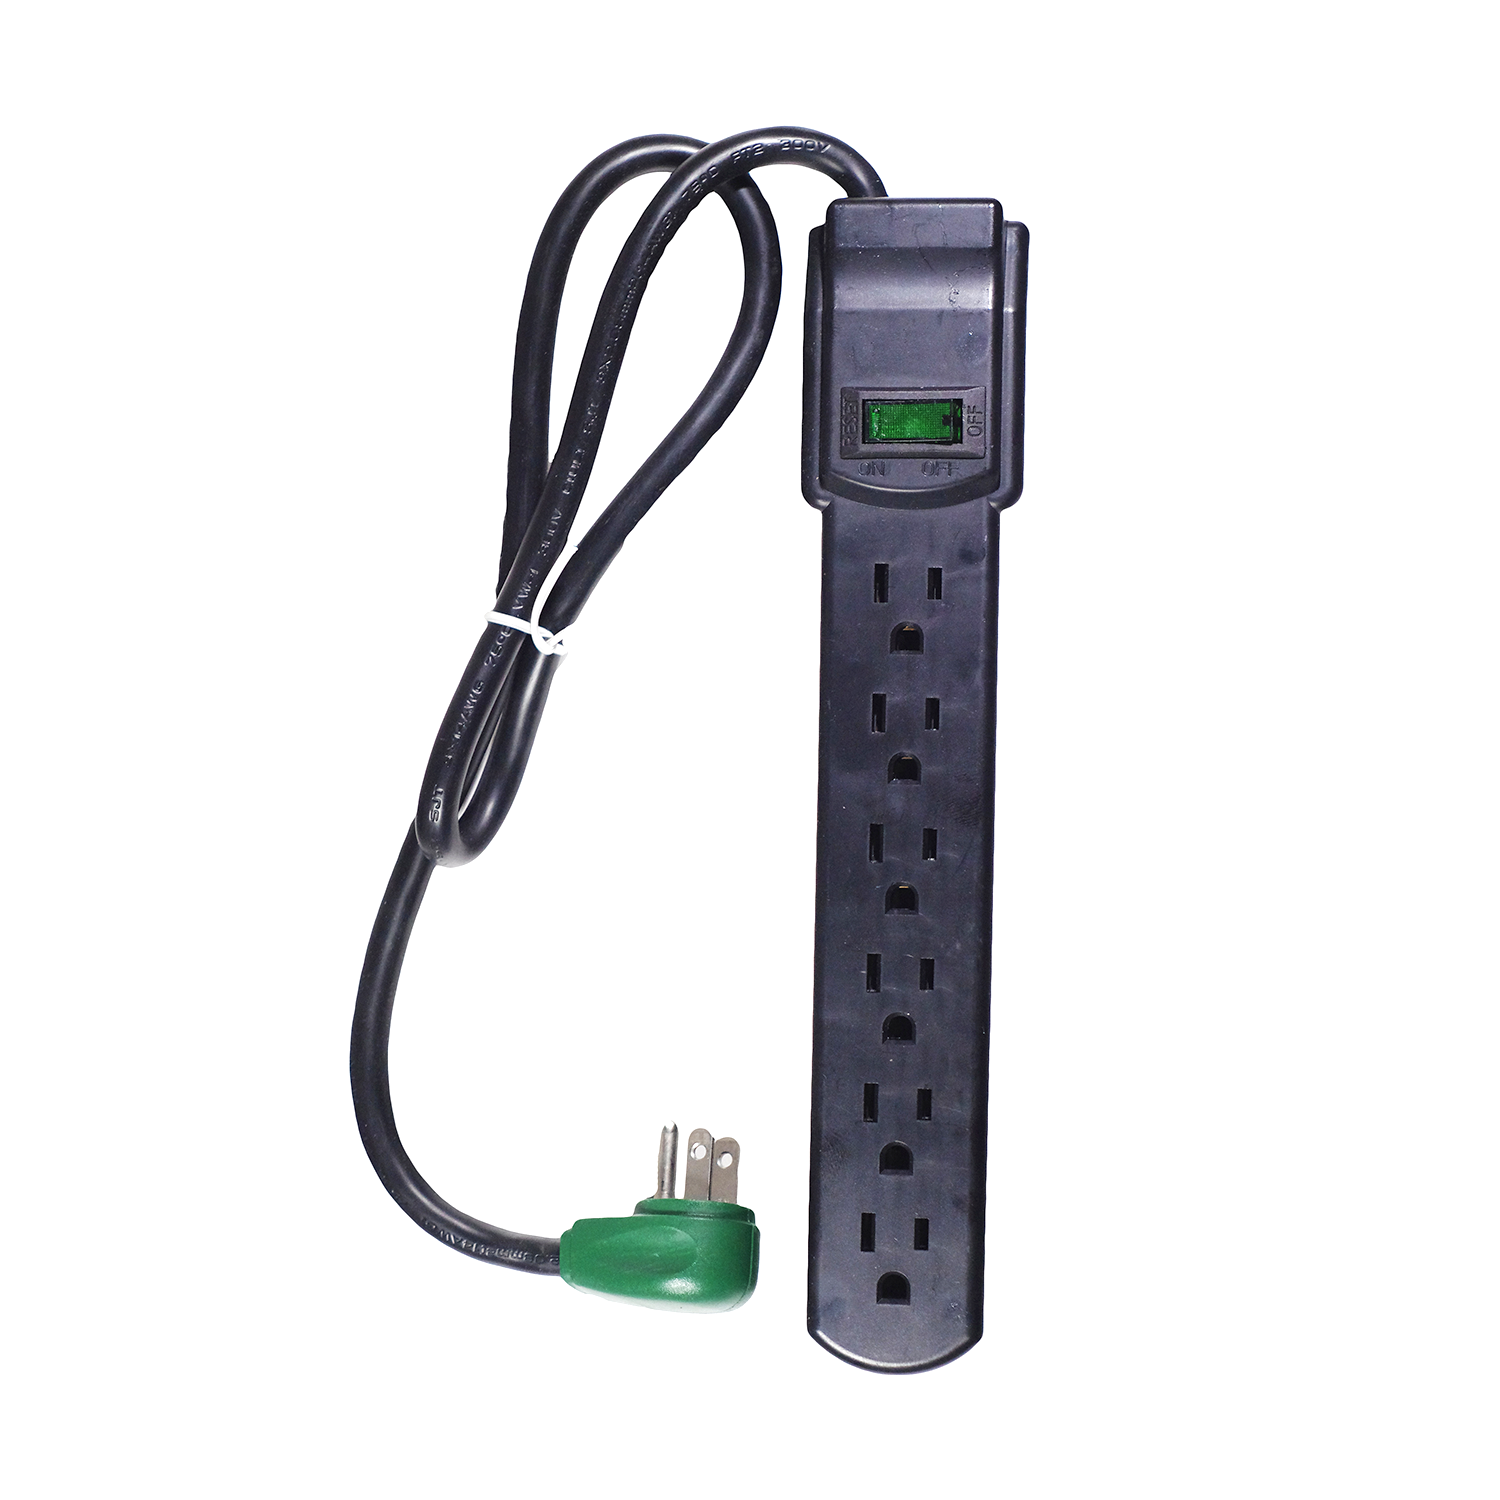 GoGreen Power 6 Outlet Surge Protector, 16103MS 2.5' cord, White